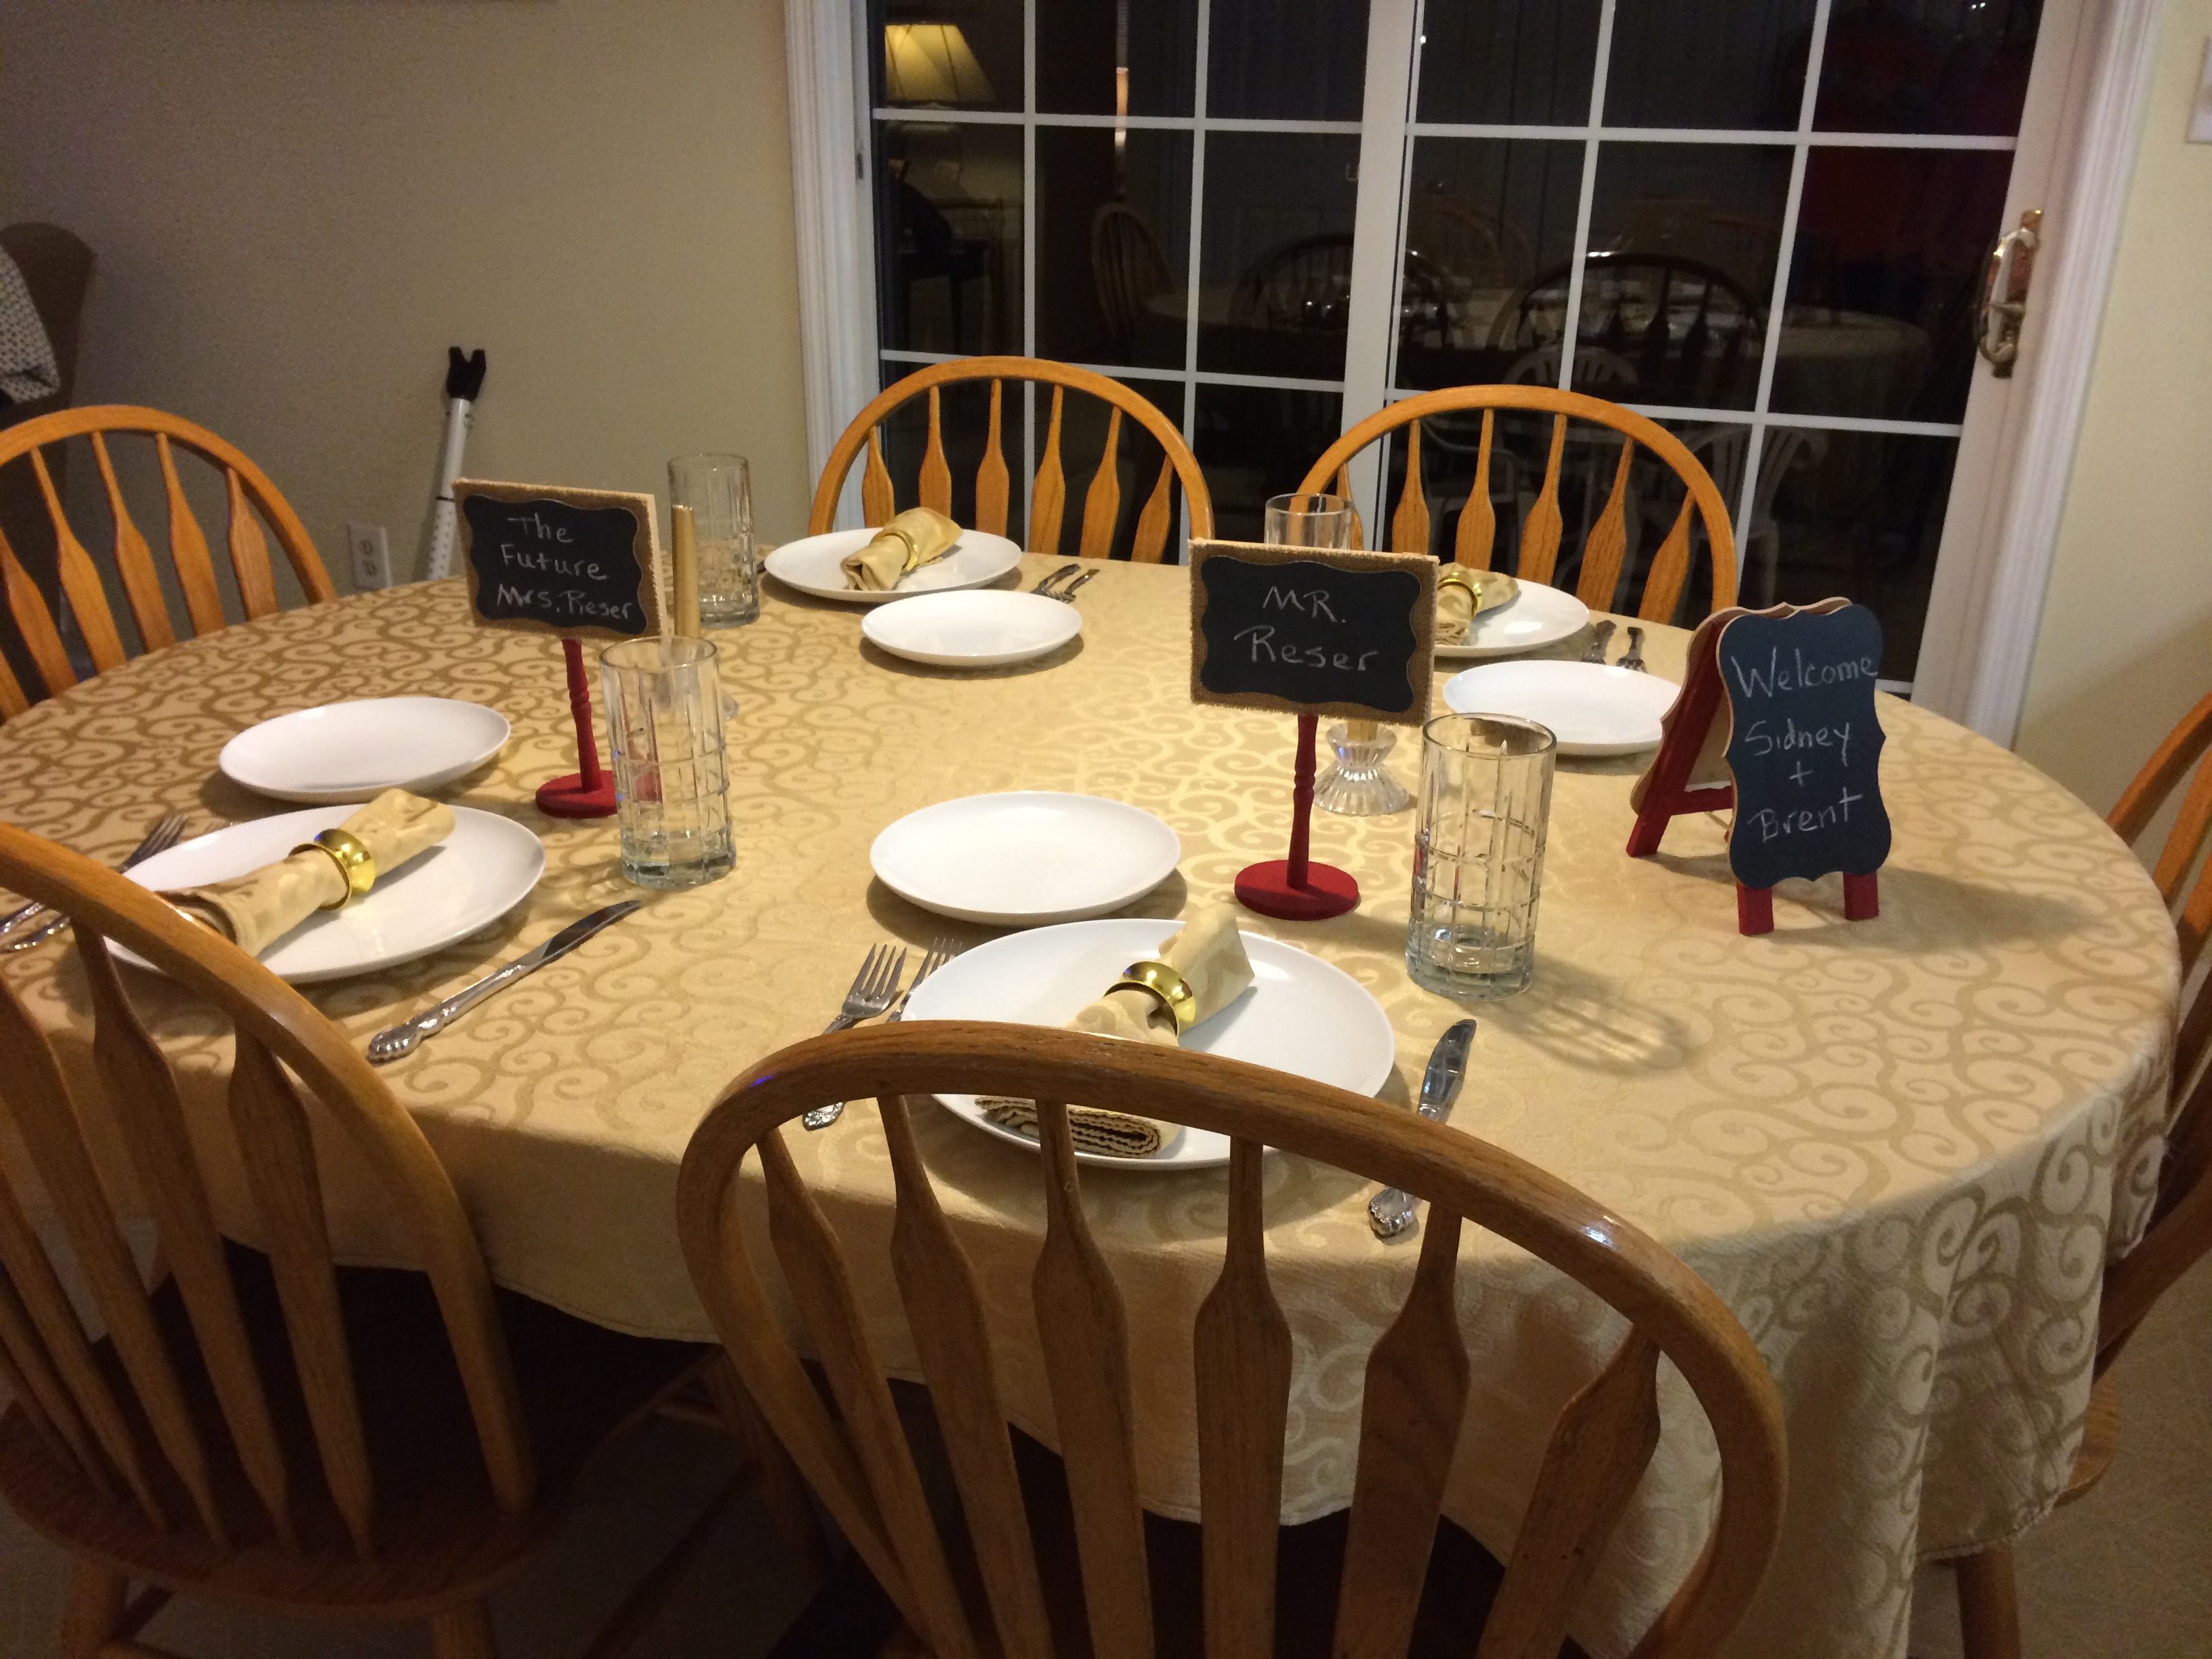 This was how the McCormick's set the table for us last night.